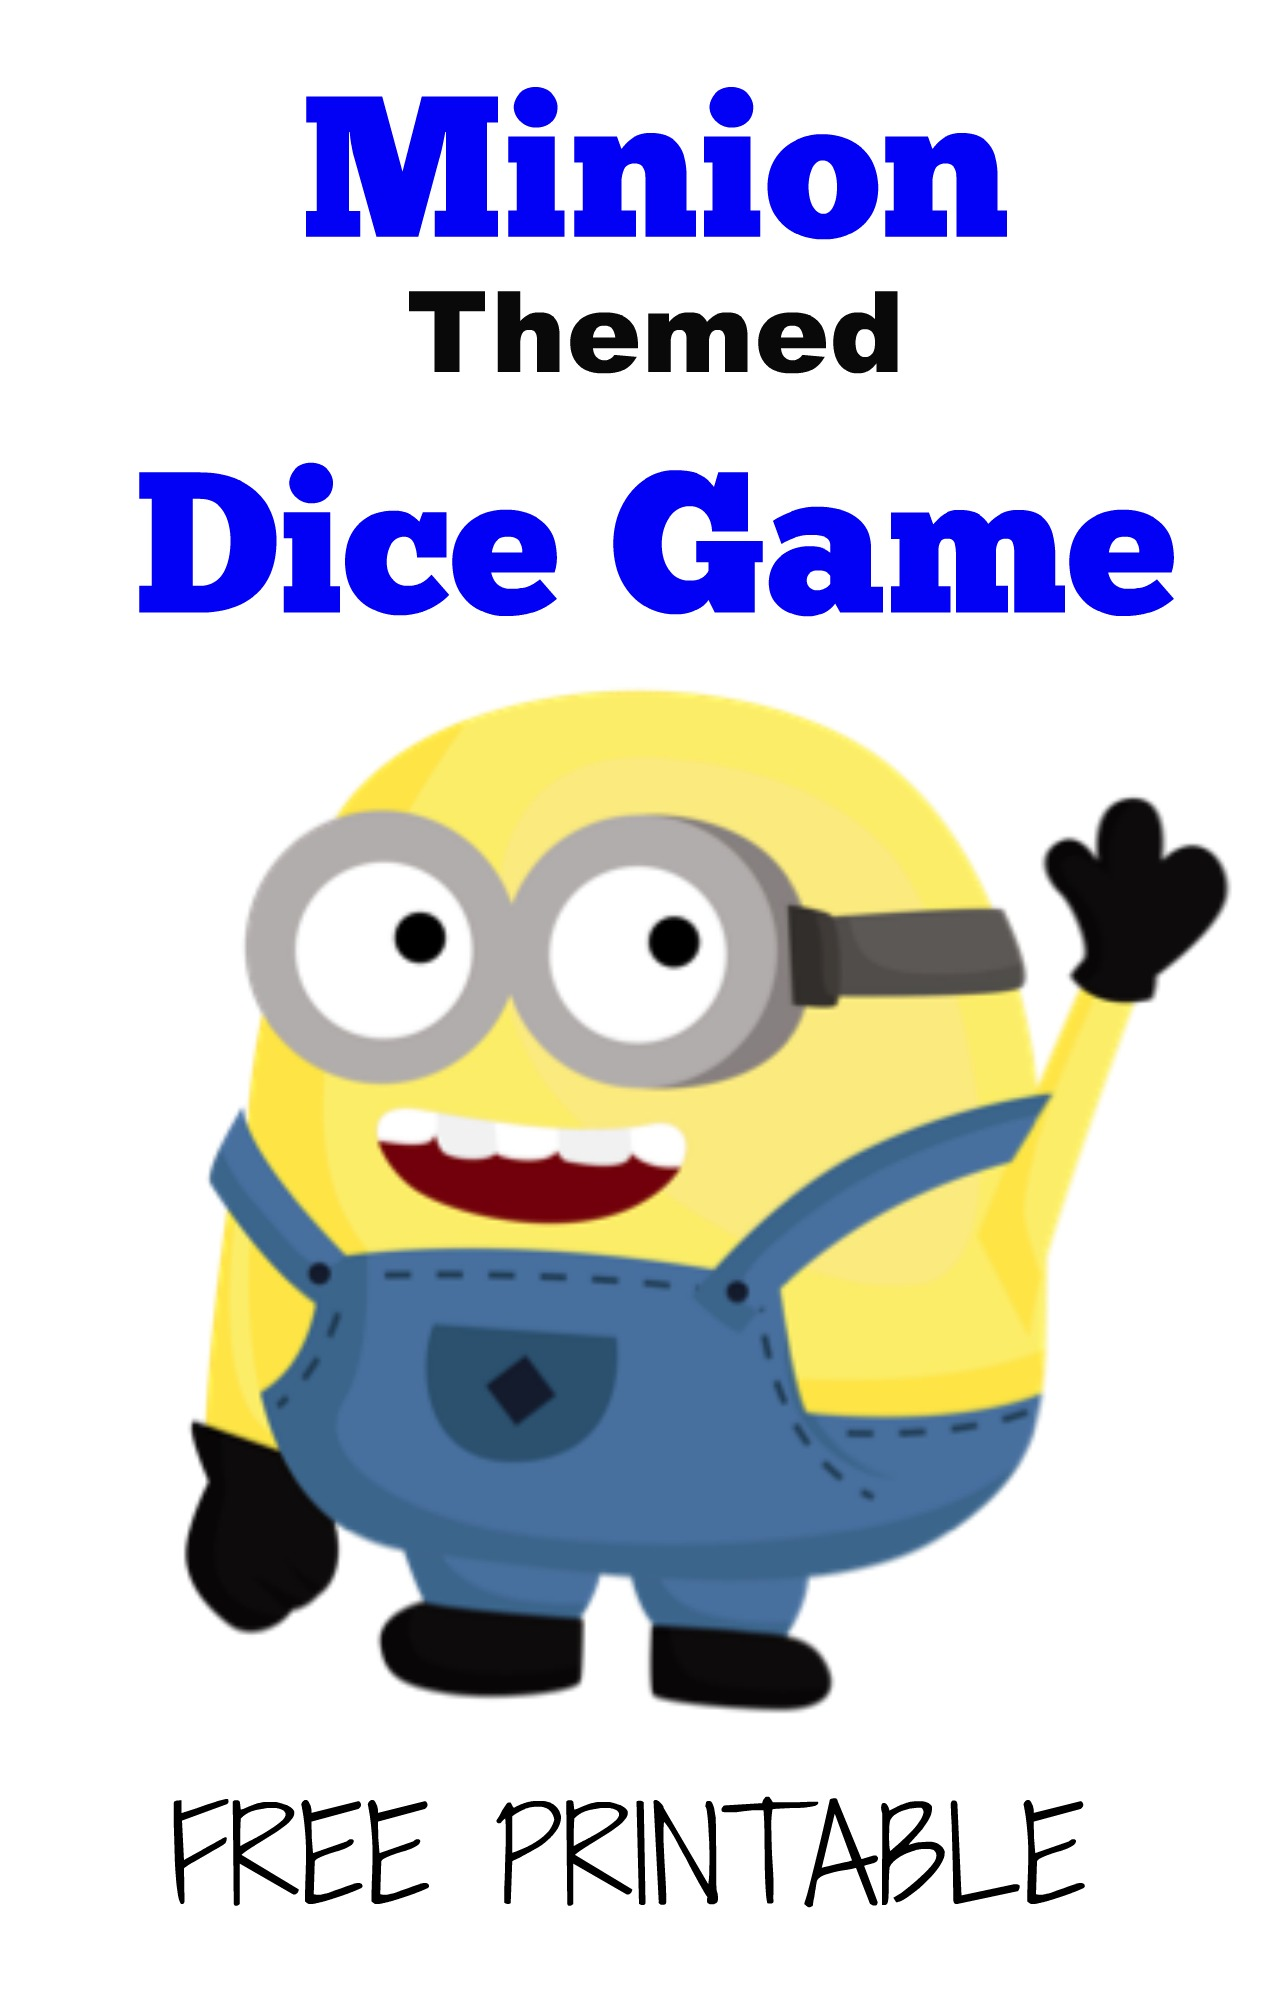 Free, Printable Minions Dice Game